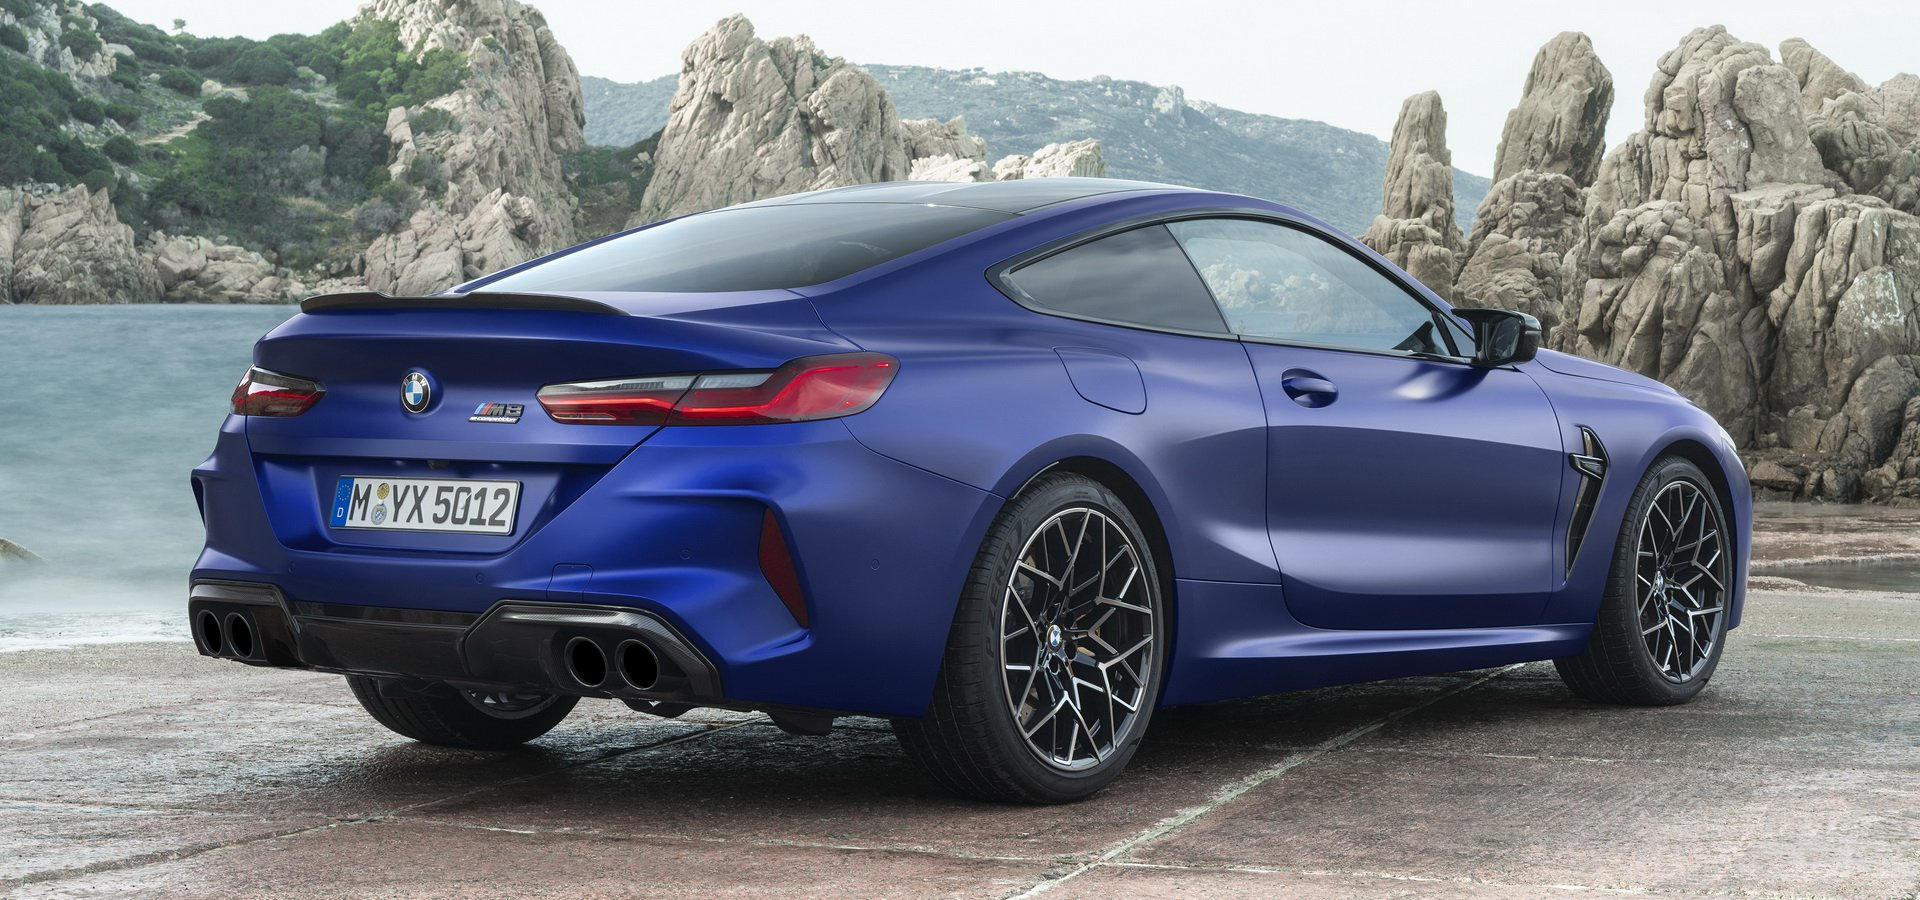 bmw-m8-vs-m6-competition-1.jpg